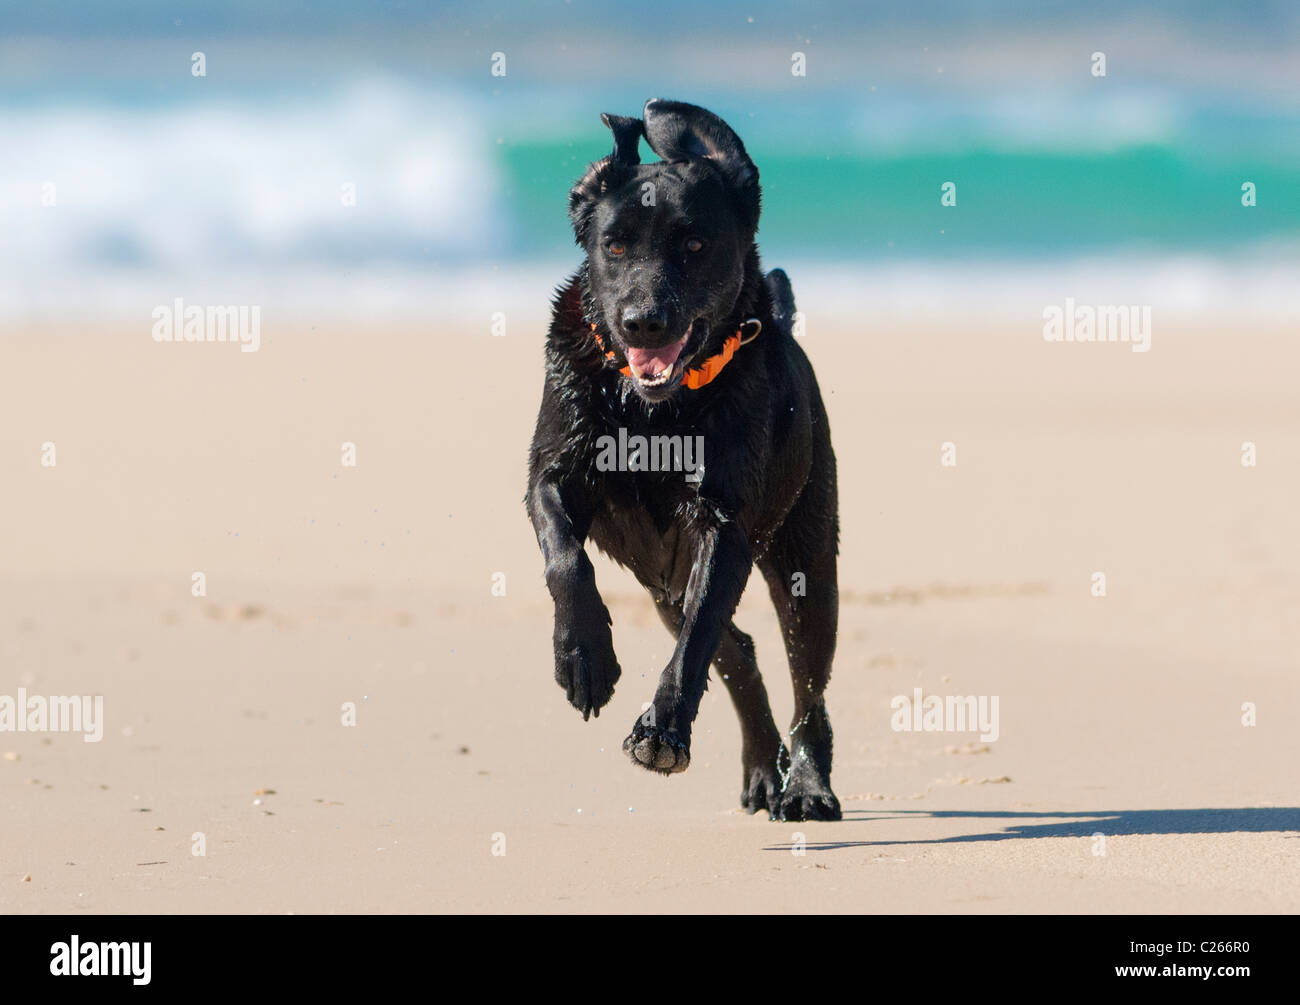 Fit labrador running along the beach. - Stock Image